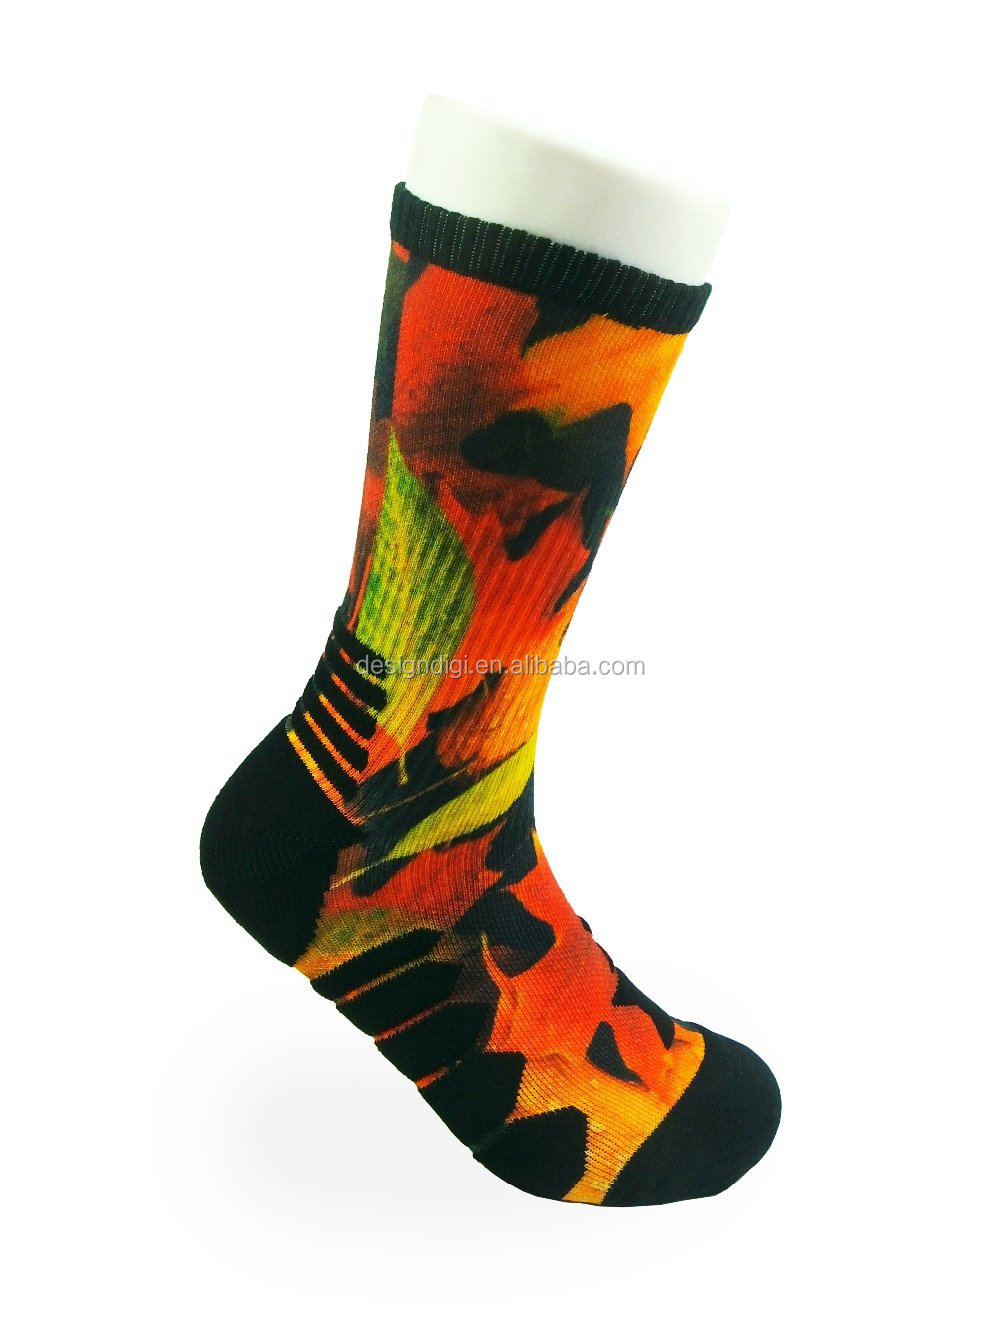 custom digital sock manufacturer customized logo in exact dimension